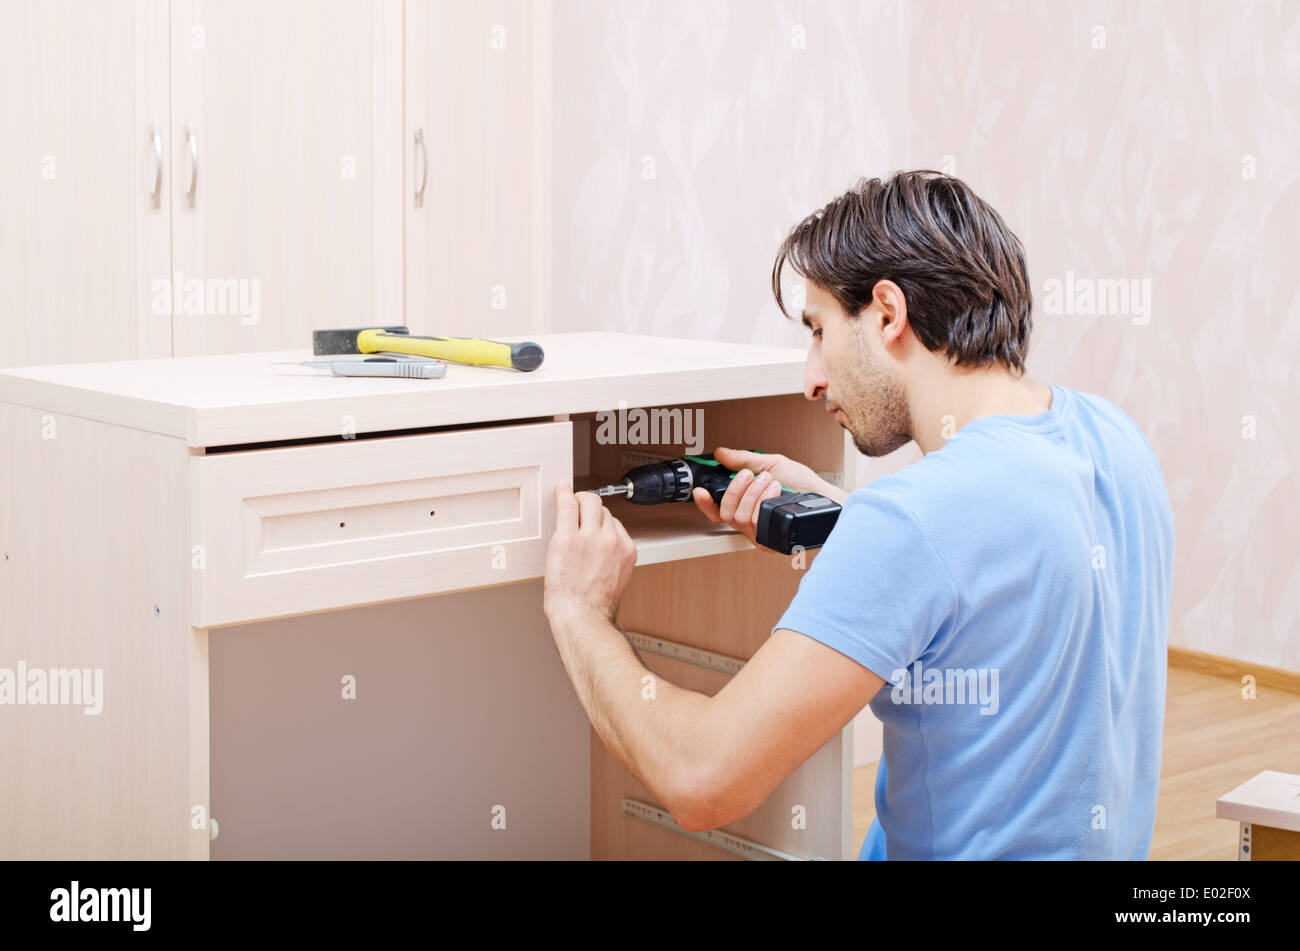 the repairer in assembly of furniture collects new furniture - Stock Image